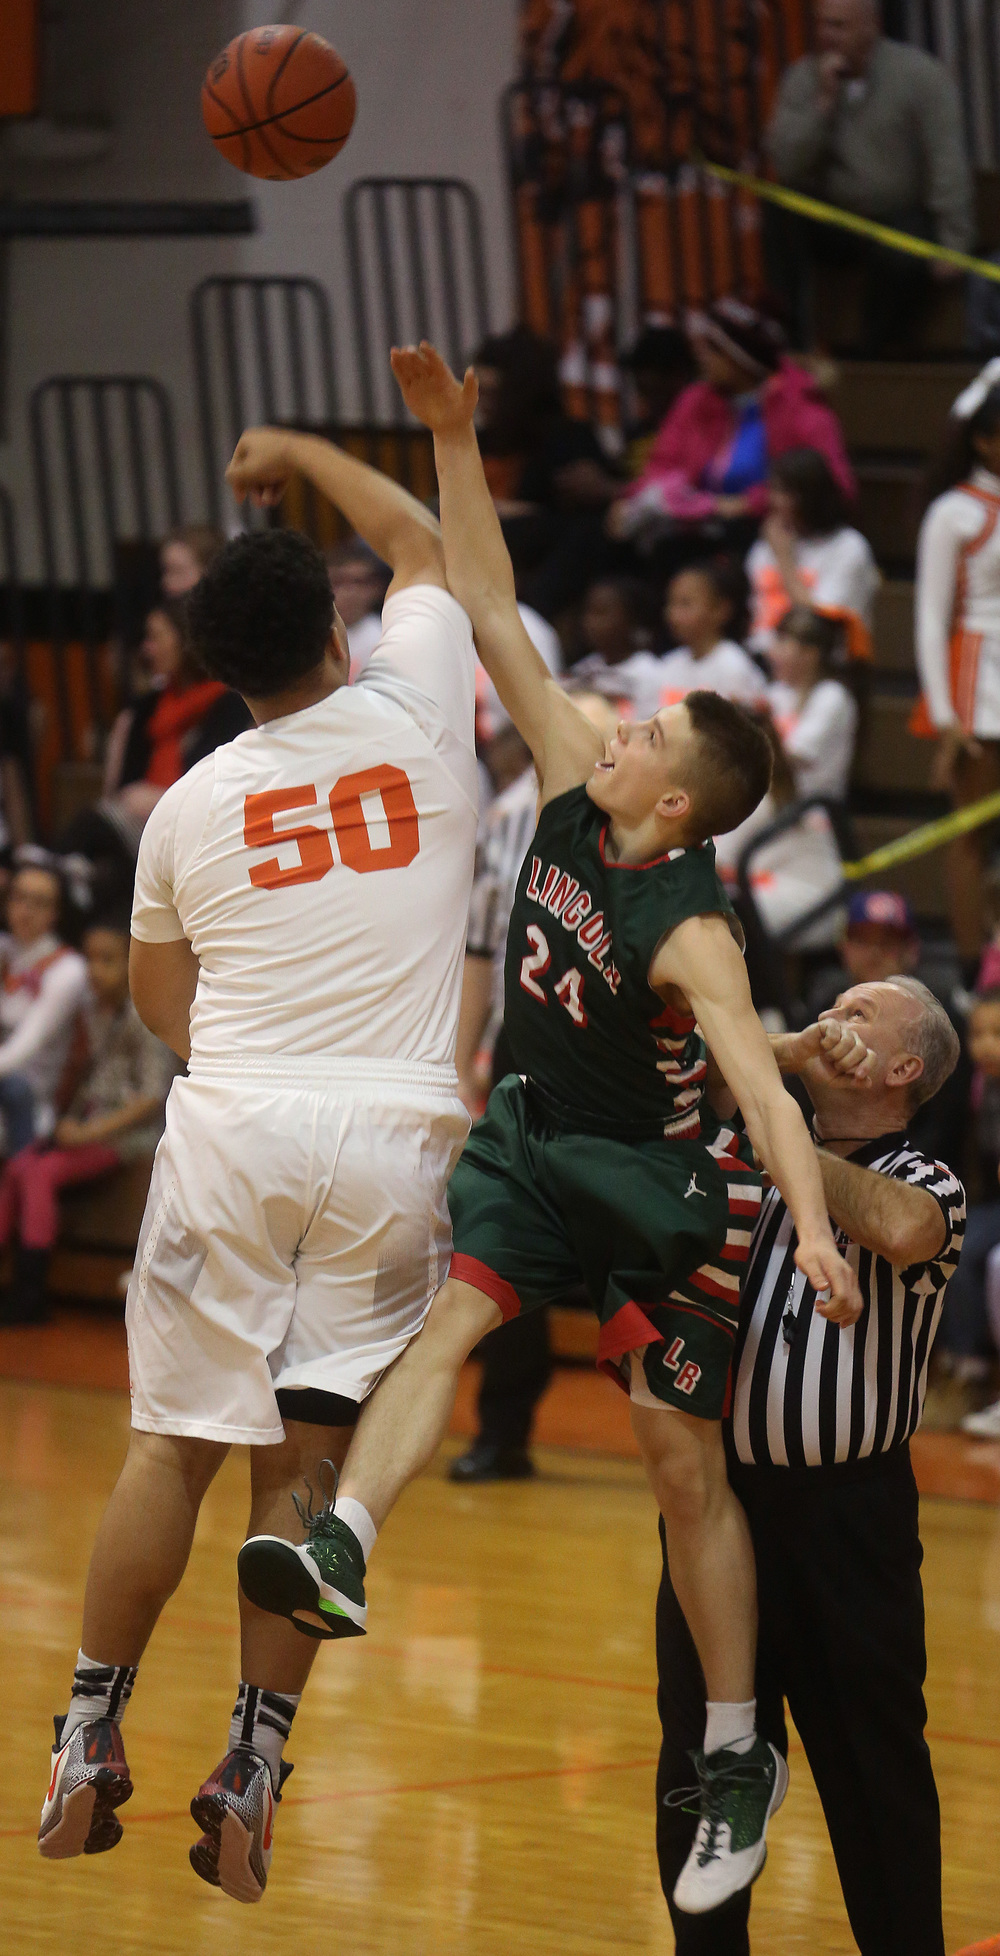 The opening tipoff featured Lanphier's William Boles at left and Lincoln's Ben Grunder. David Spencer/The State Journal Register